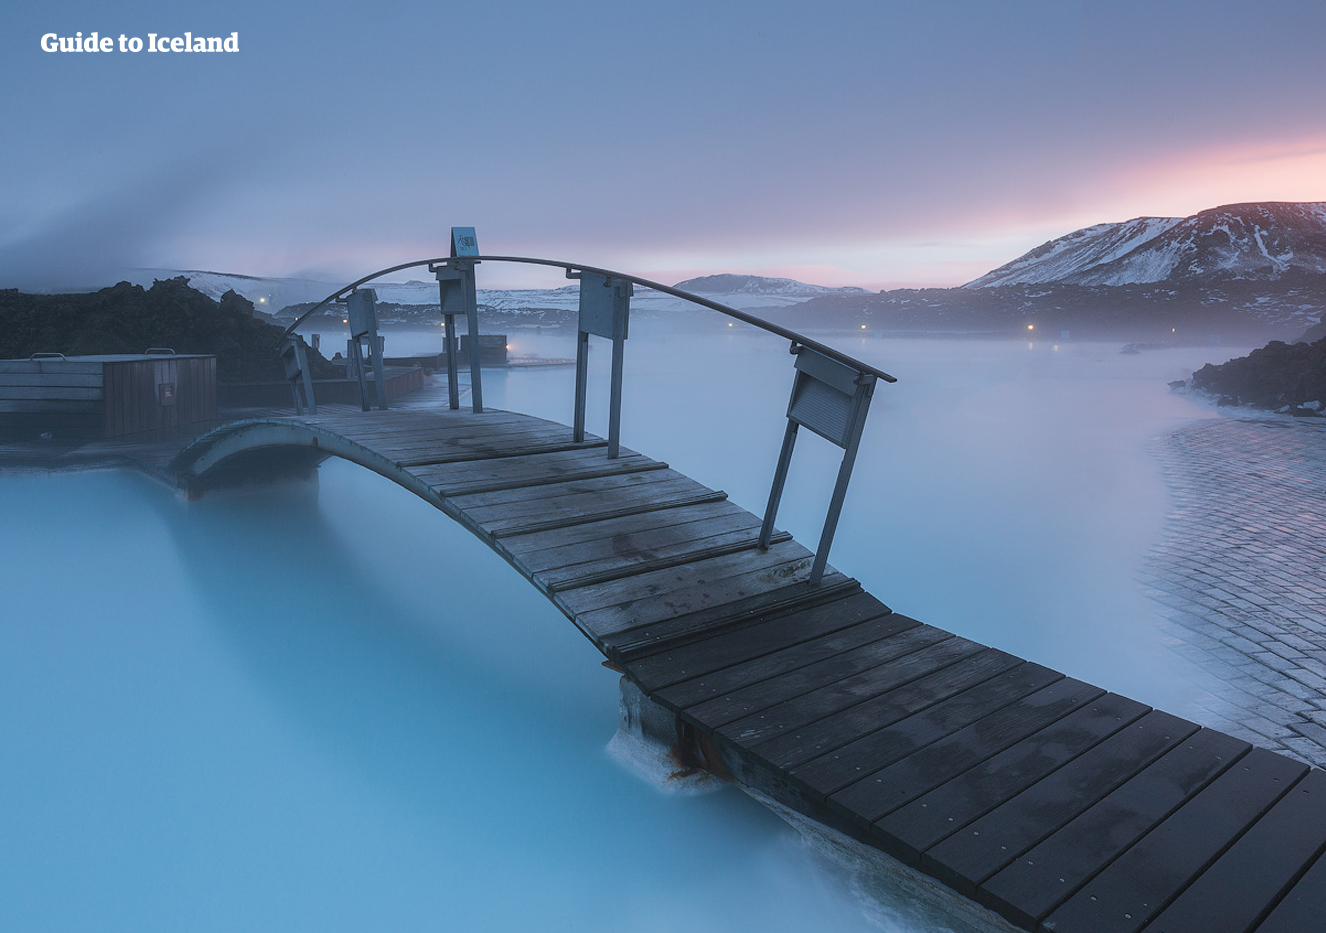 yoUnwind in the geothermal waters of the Blue Lagoon to recharge ur batteries after your flight.